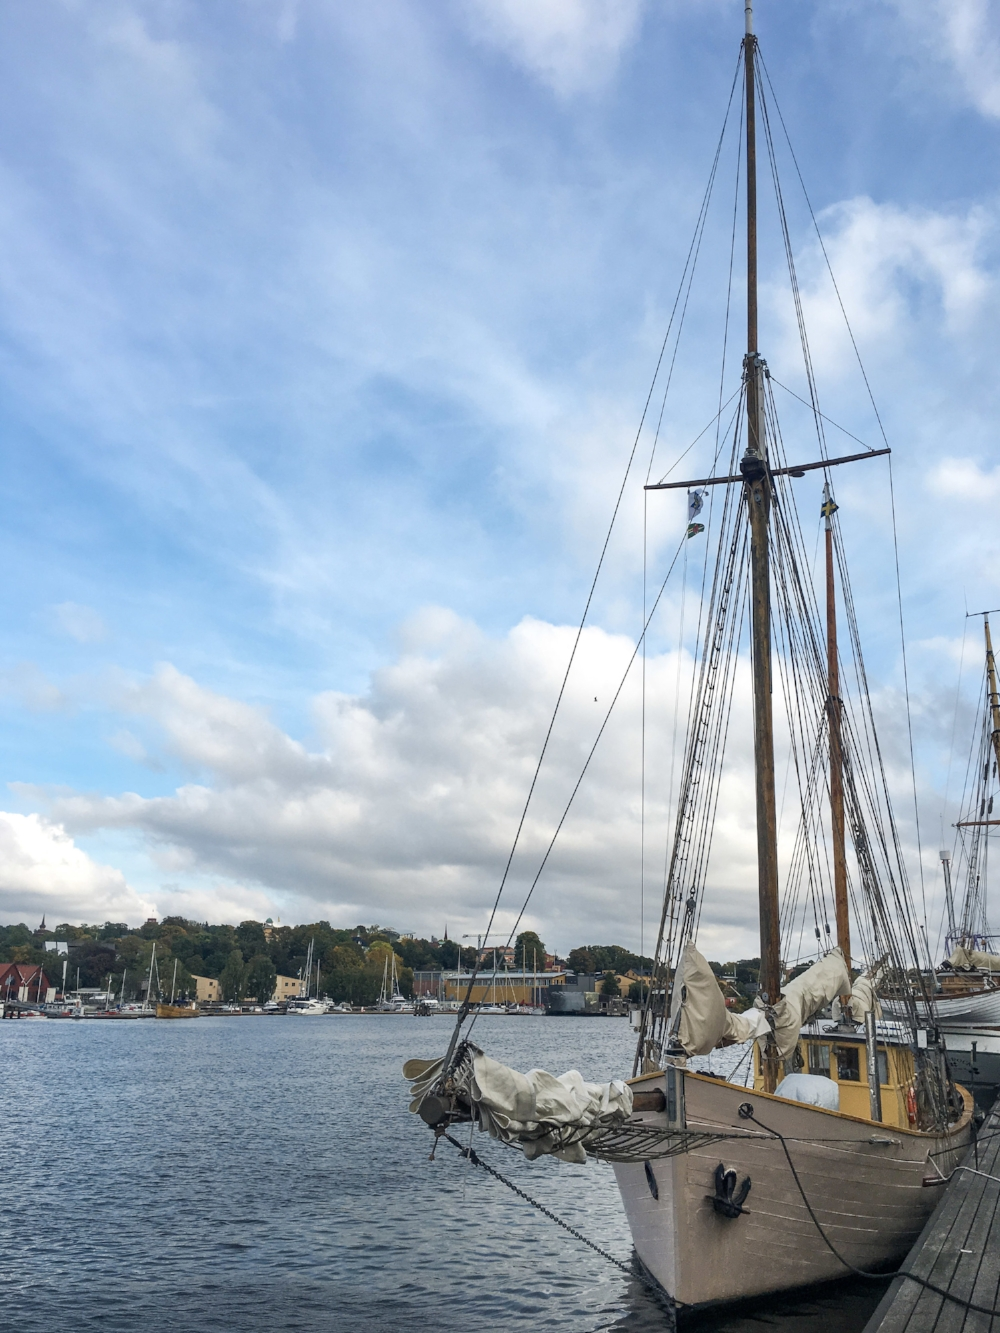 curio.trips.sweden.stockholm.waterfront.boats.iphone.jpg